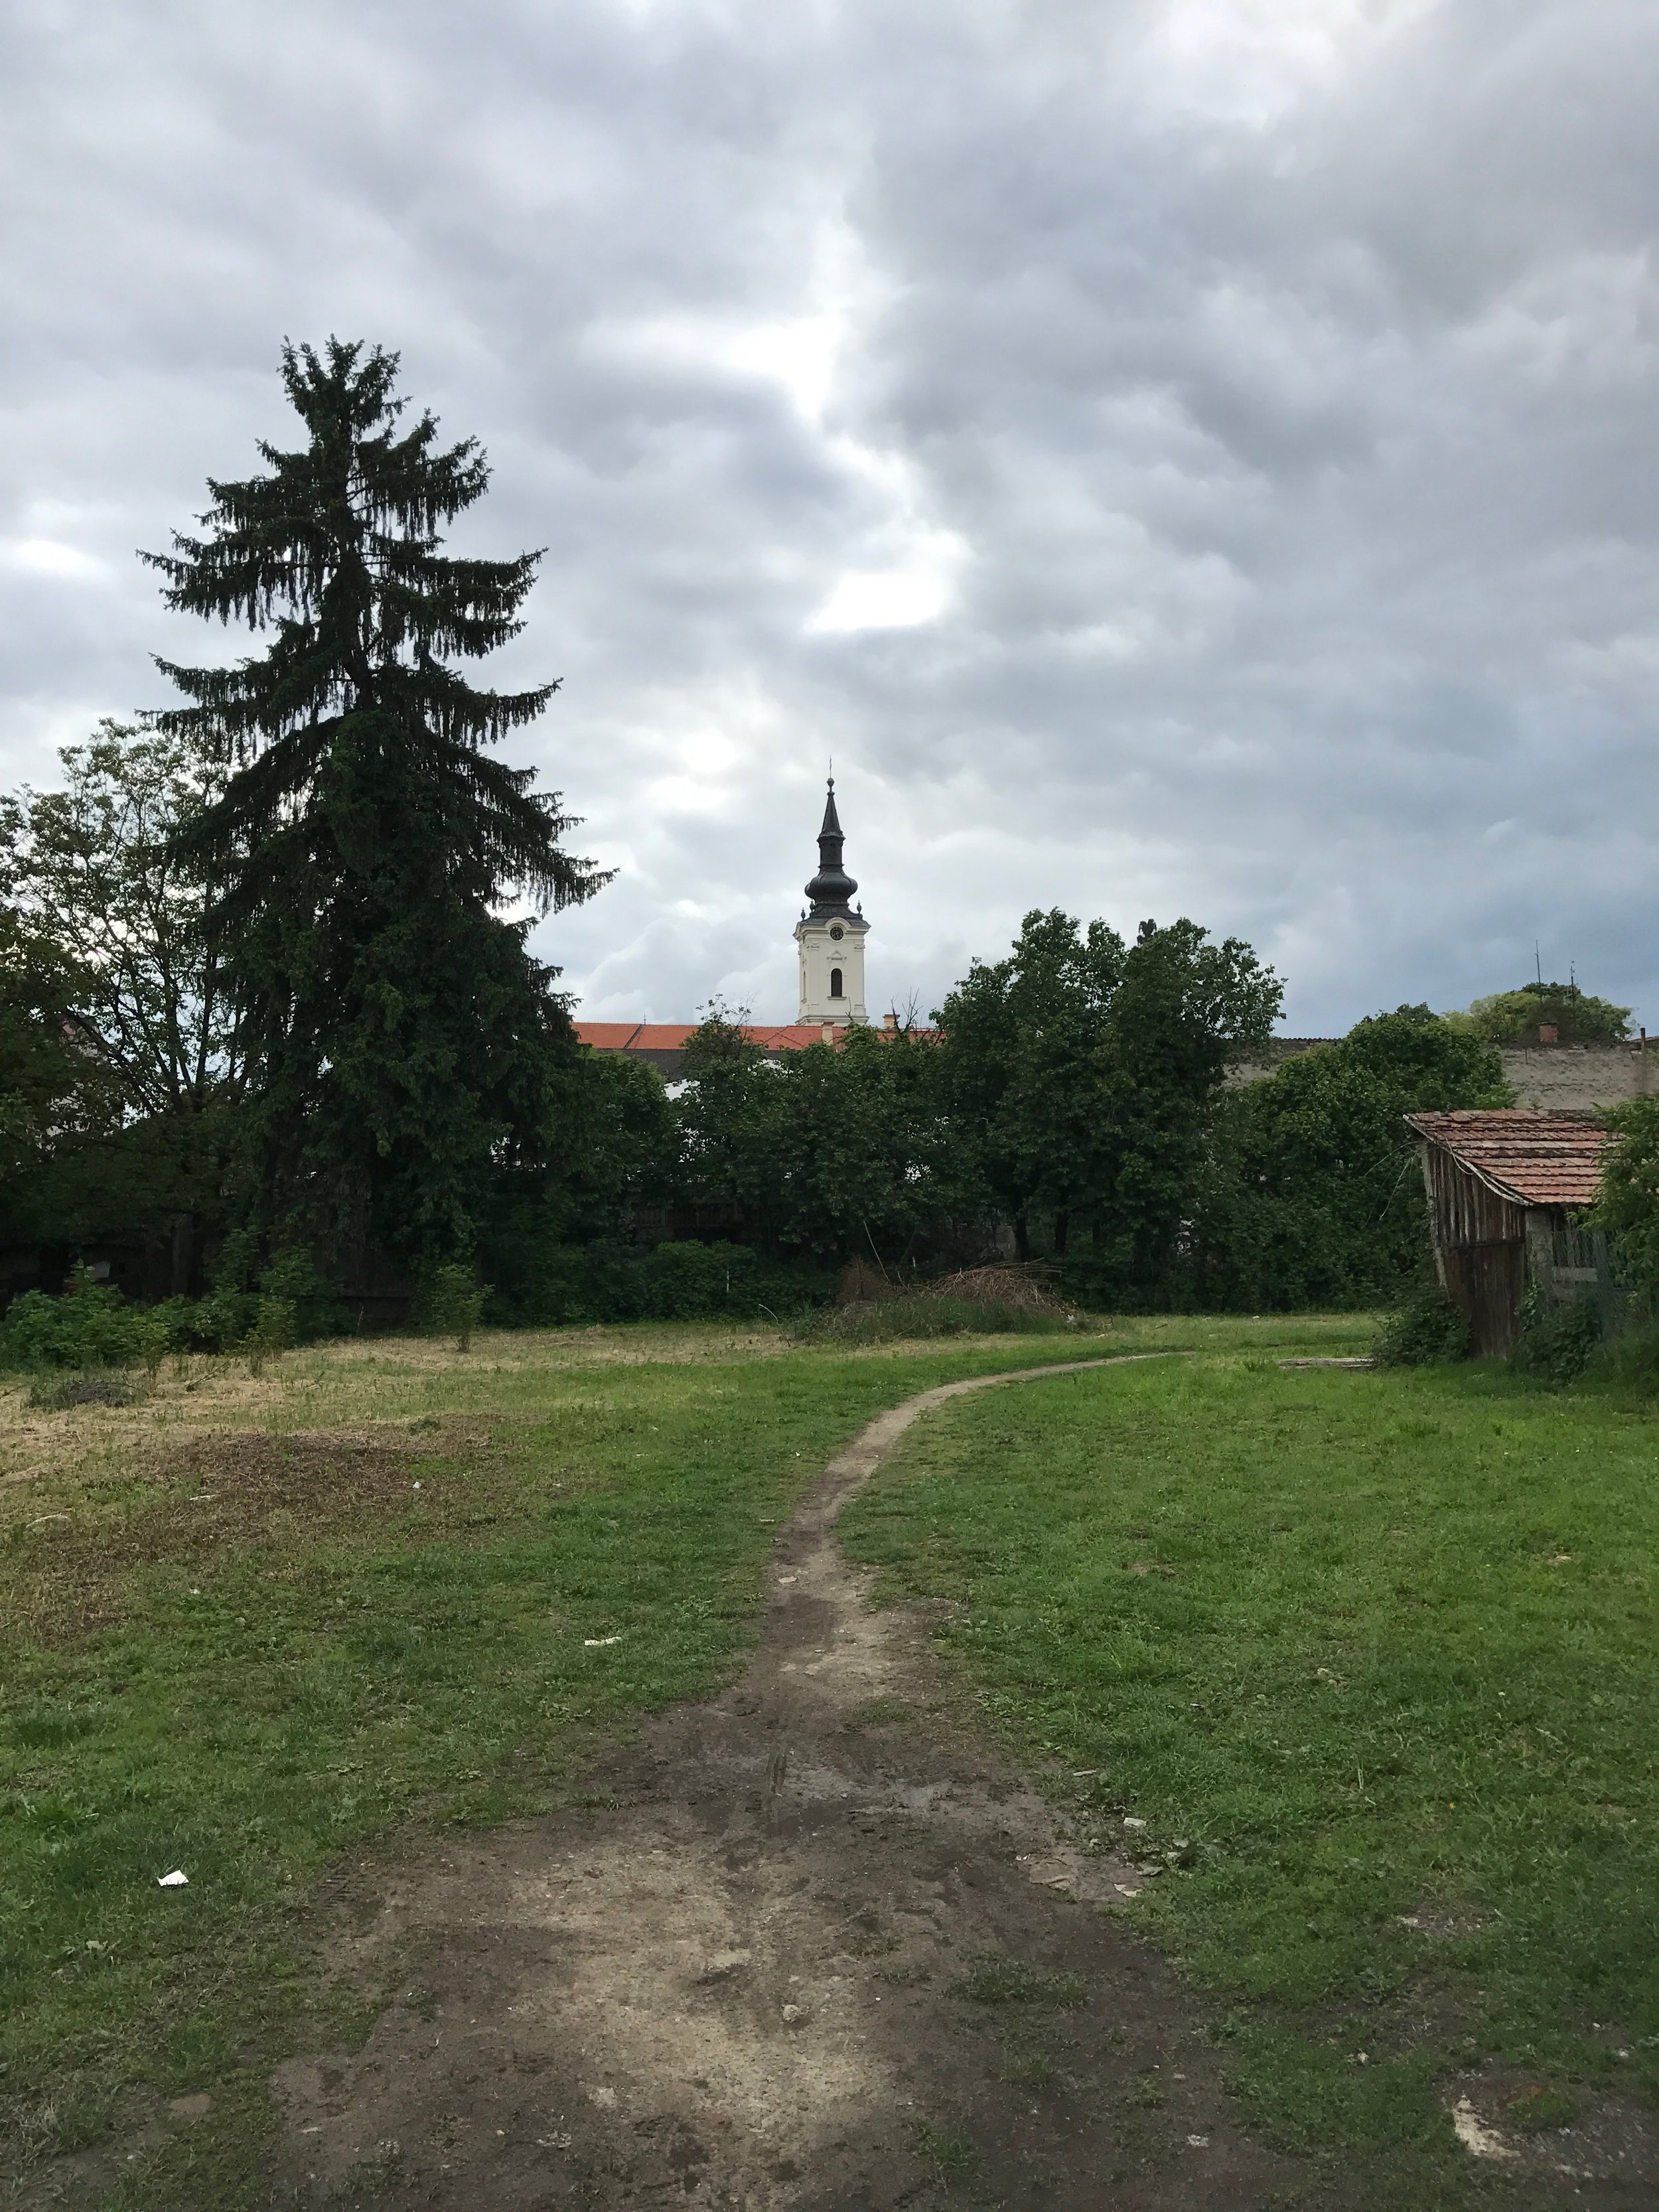 Another view of N.Gradiska church from in town